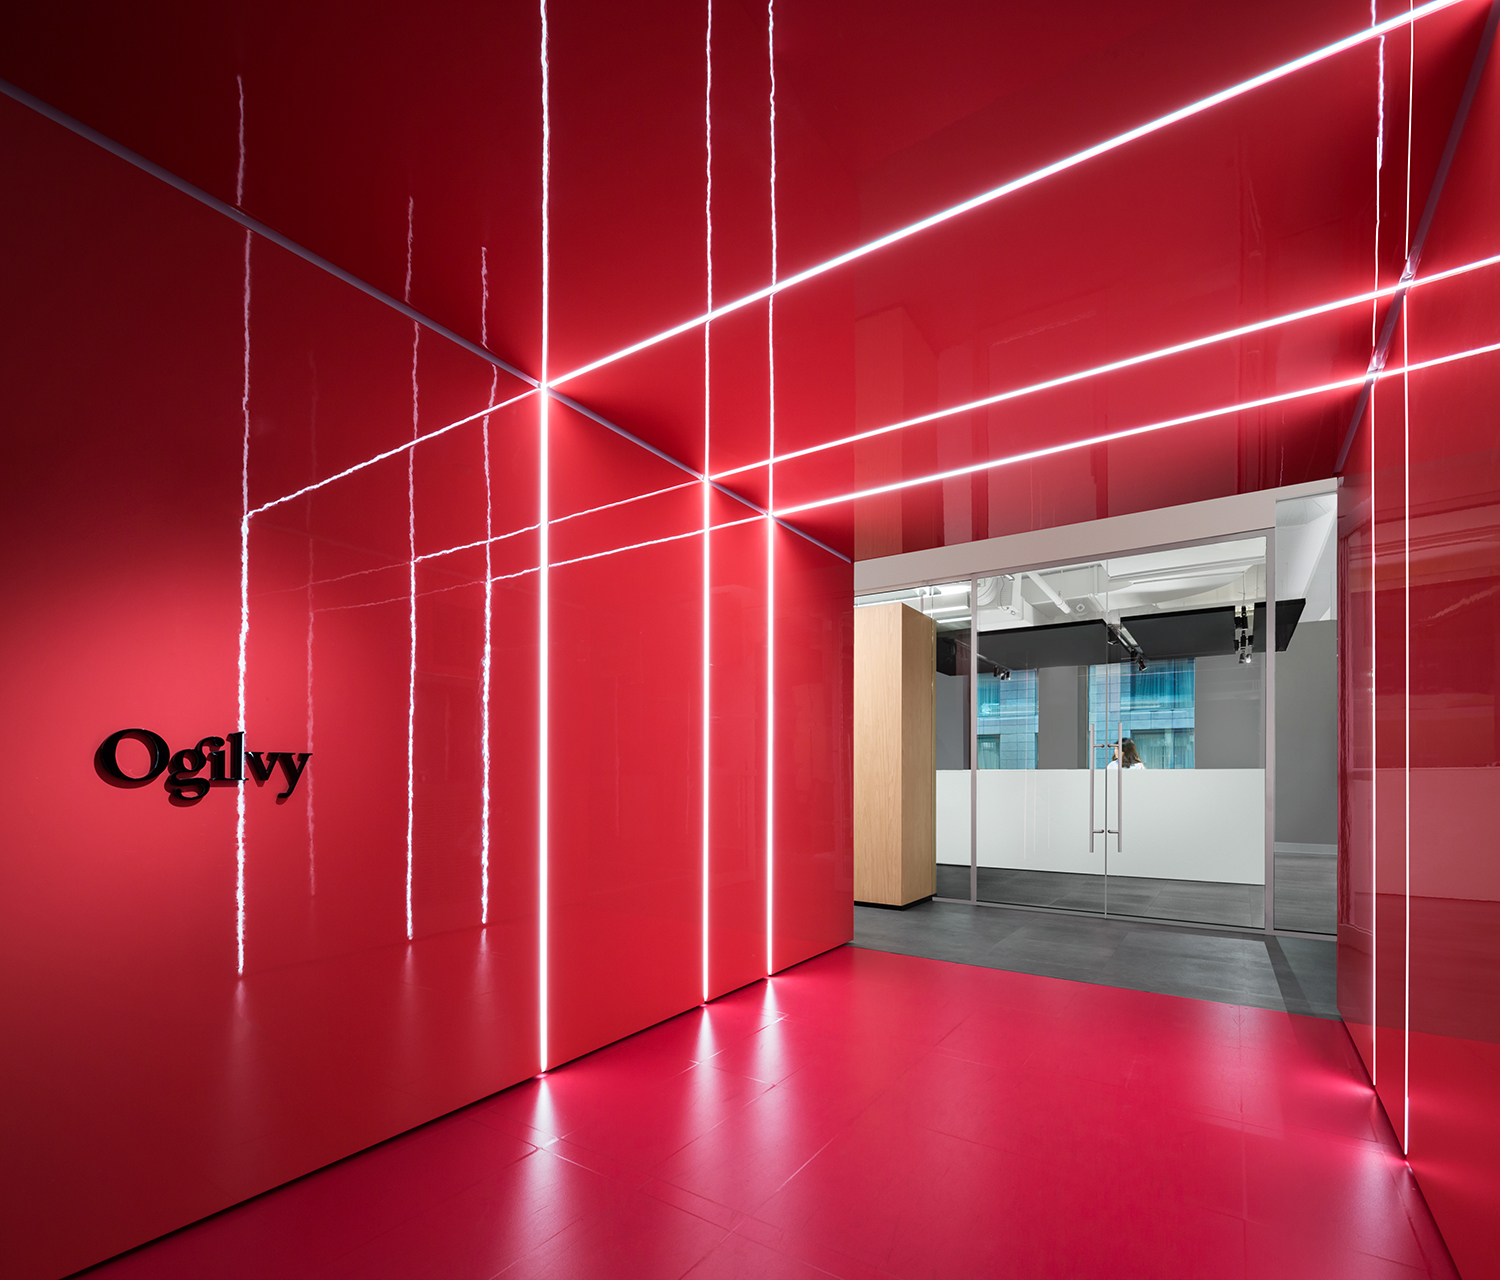 Ogilvy Montreal's red entrance space